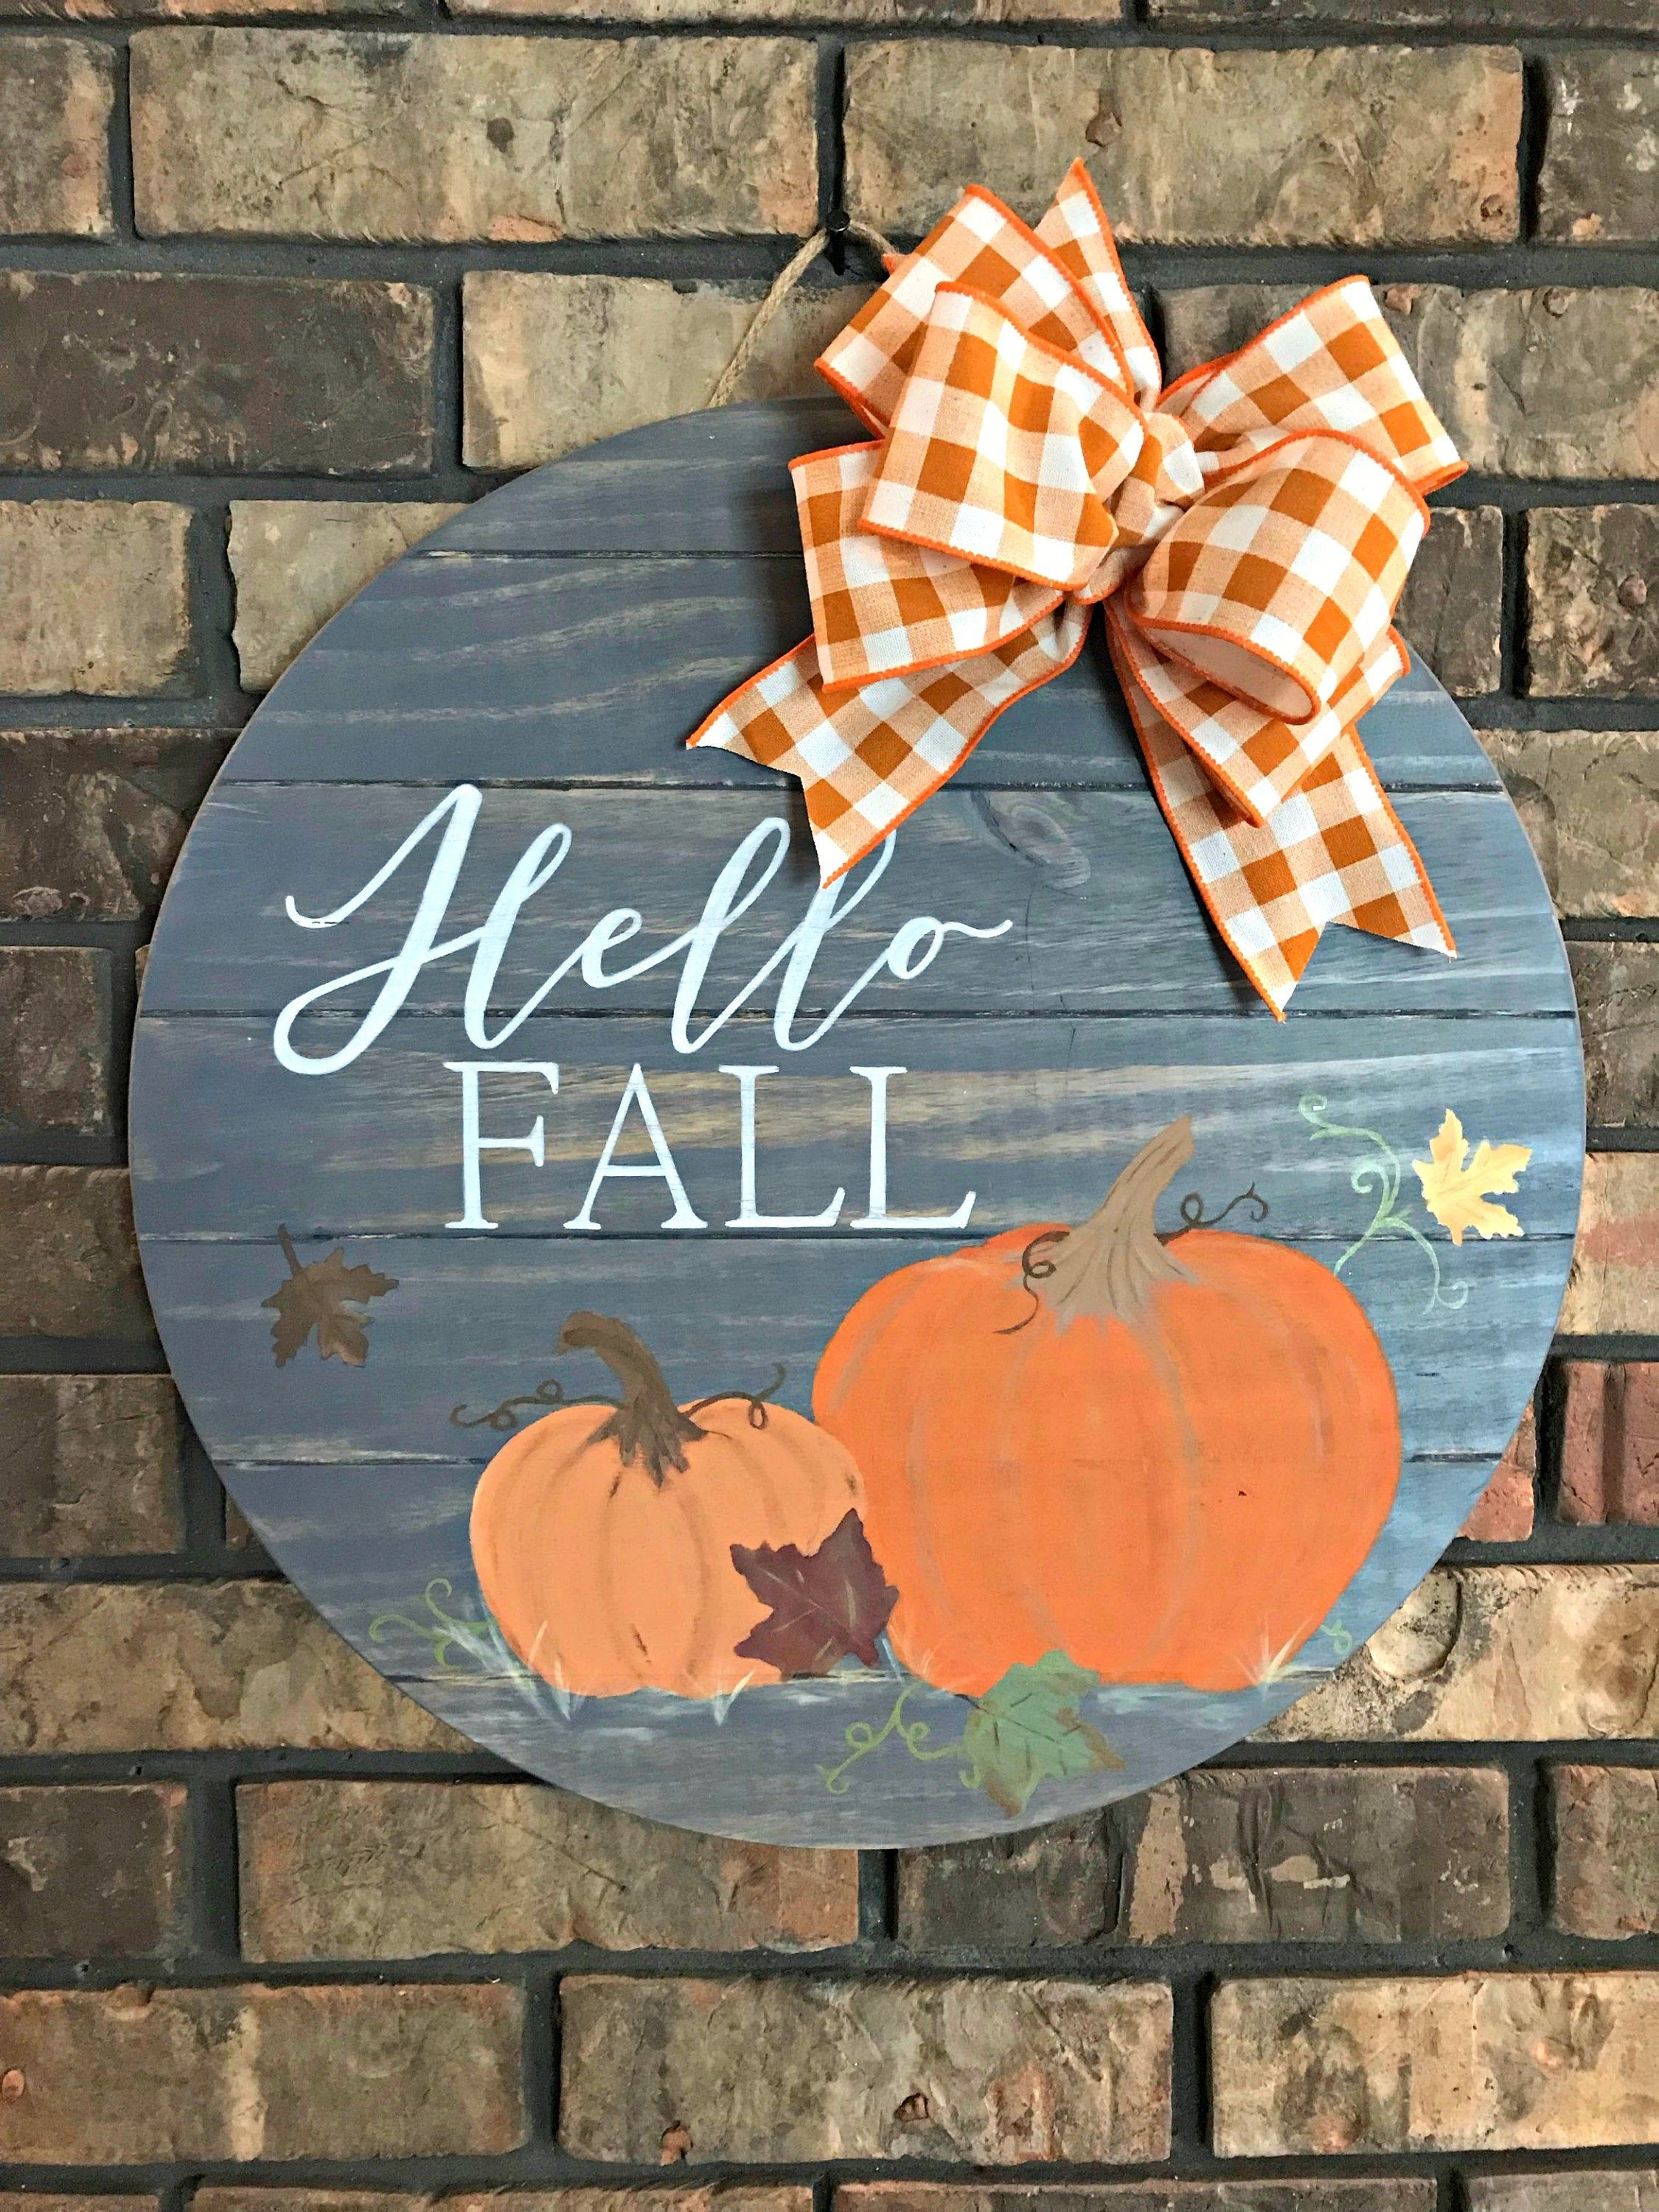 Hello Fall Wooden Door Hanger with Pumpkins, Hand-Painted Round Sign, Fall Sign, Autumn Porch Decor, Hostess Gift, Classroom Decoration